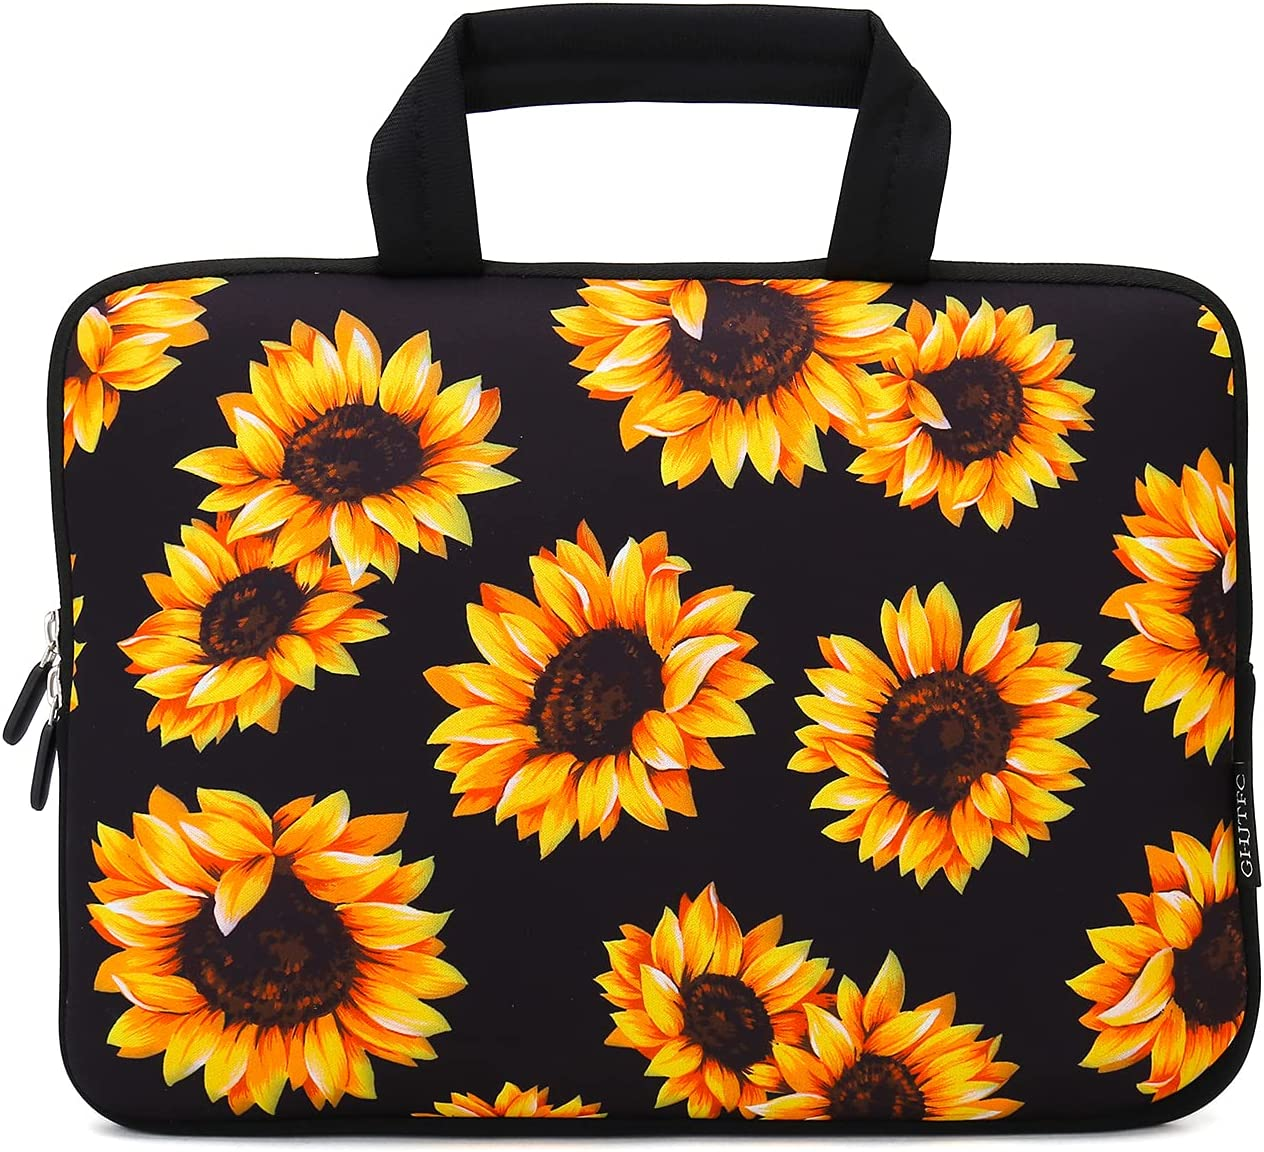 15 15.4 15.6 Inch Laptop Sleeve Carrying Bag Protective Case Neoprene Sleeve Tote Tablet Cover Notebook Briefcase Bag with Handle for Women Men (Sunflower,15